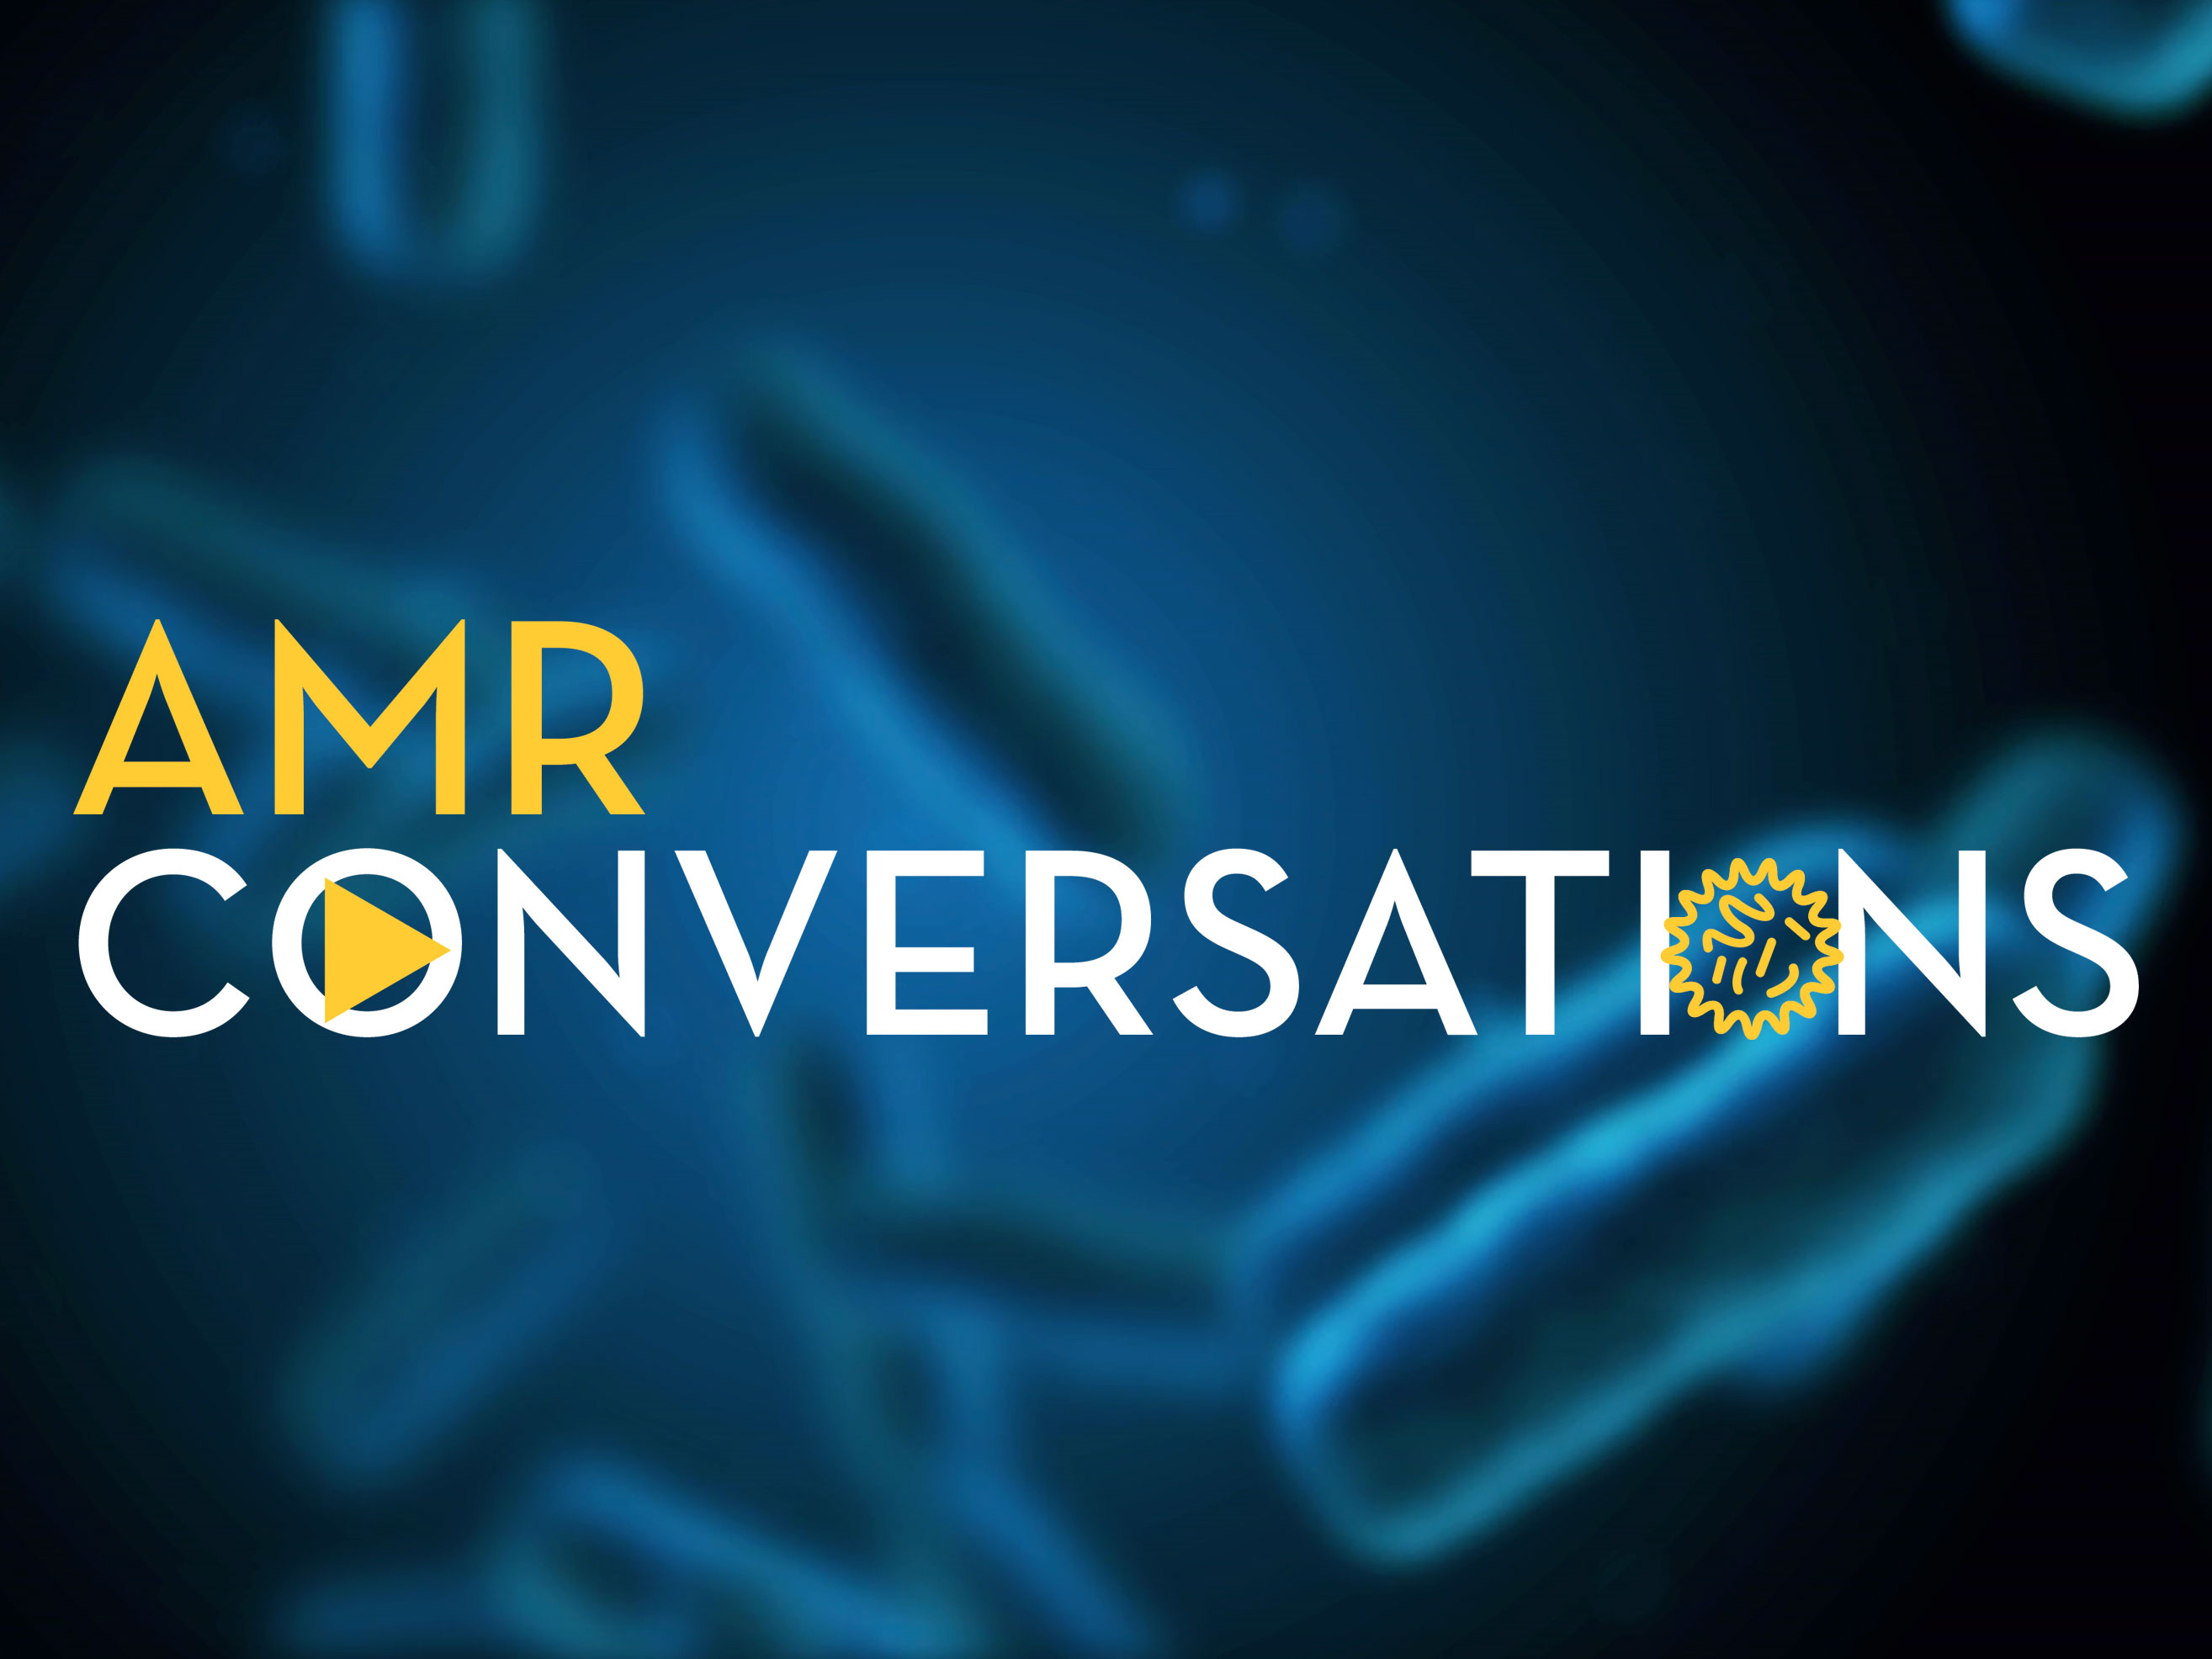 words AMR Conversations on a blue background with animated bacteria